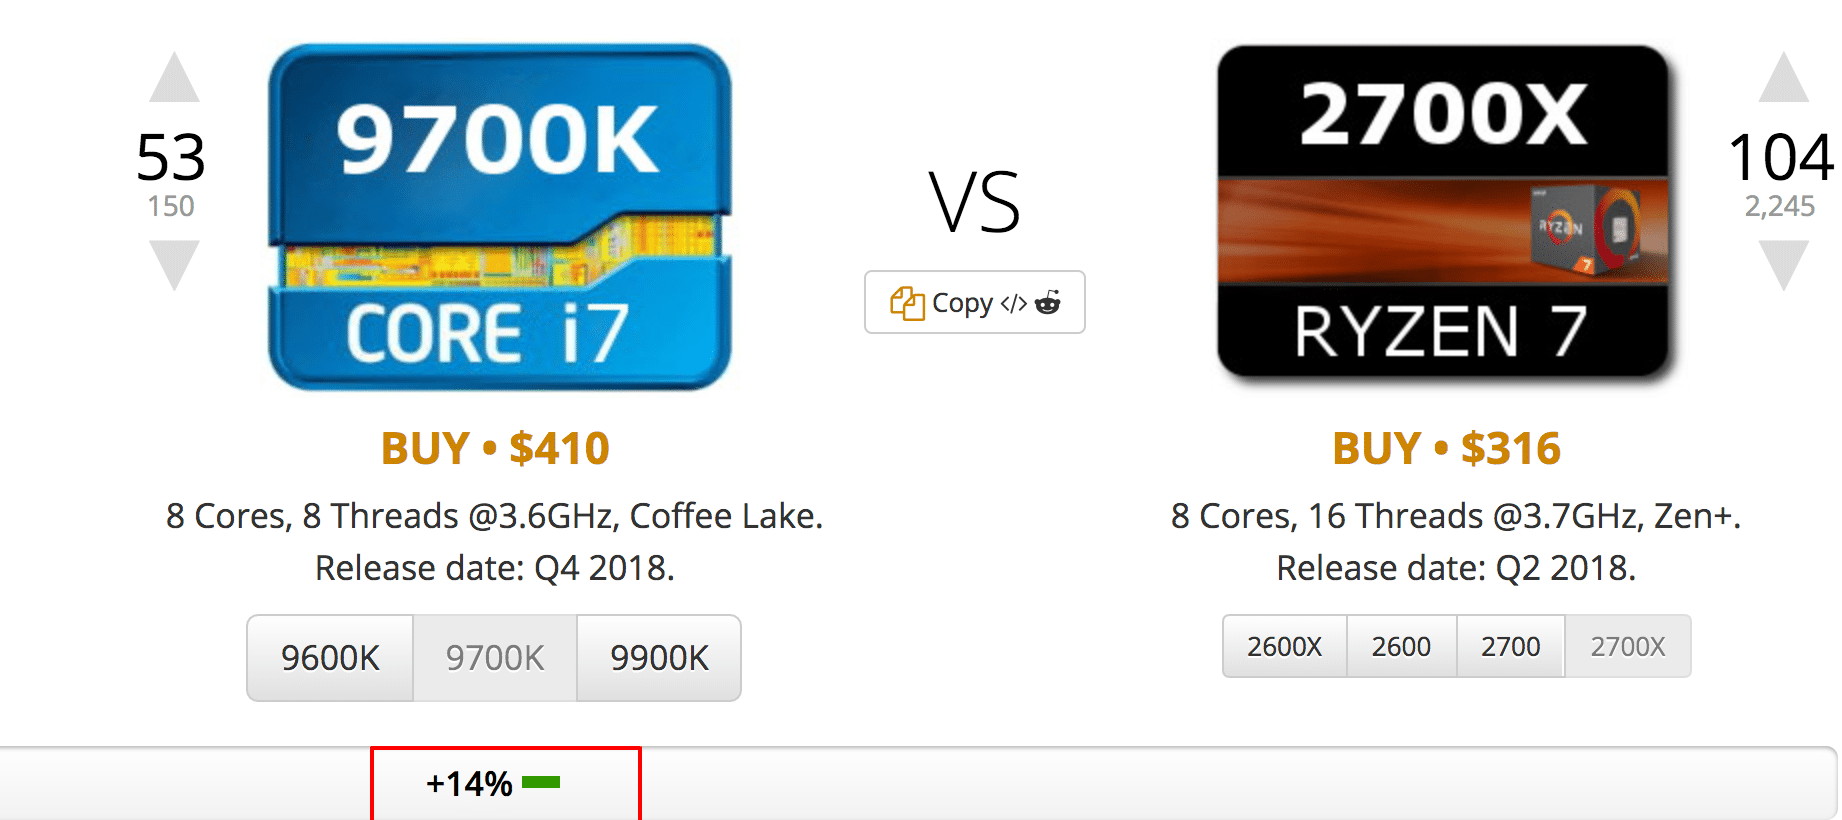 This image shows that the Intel cpu is only slightly faster despite being $100 more expensive